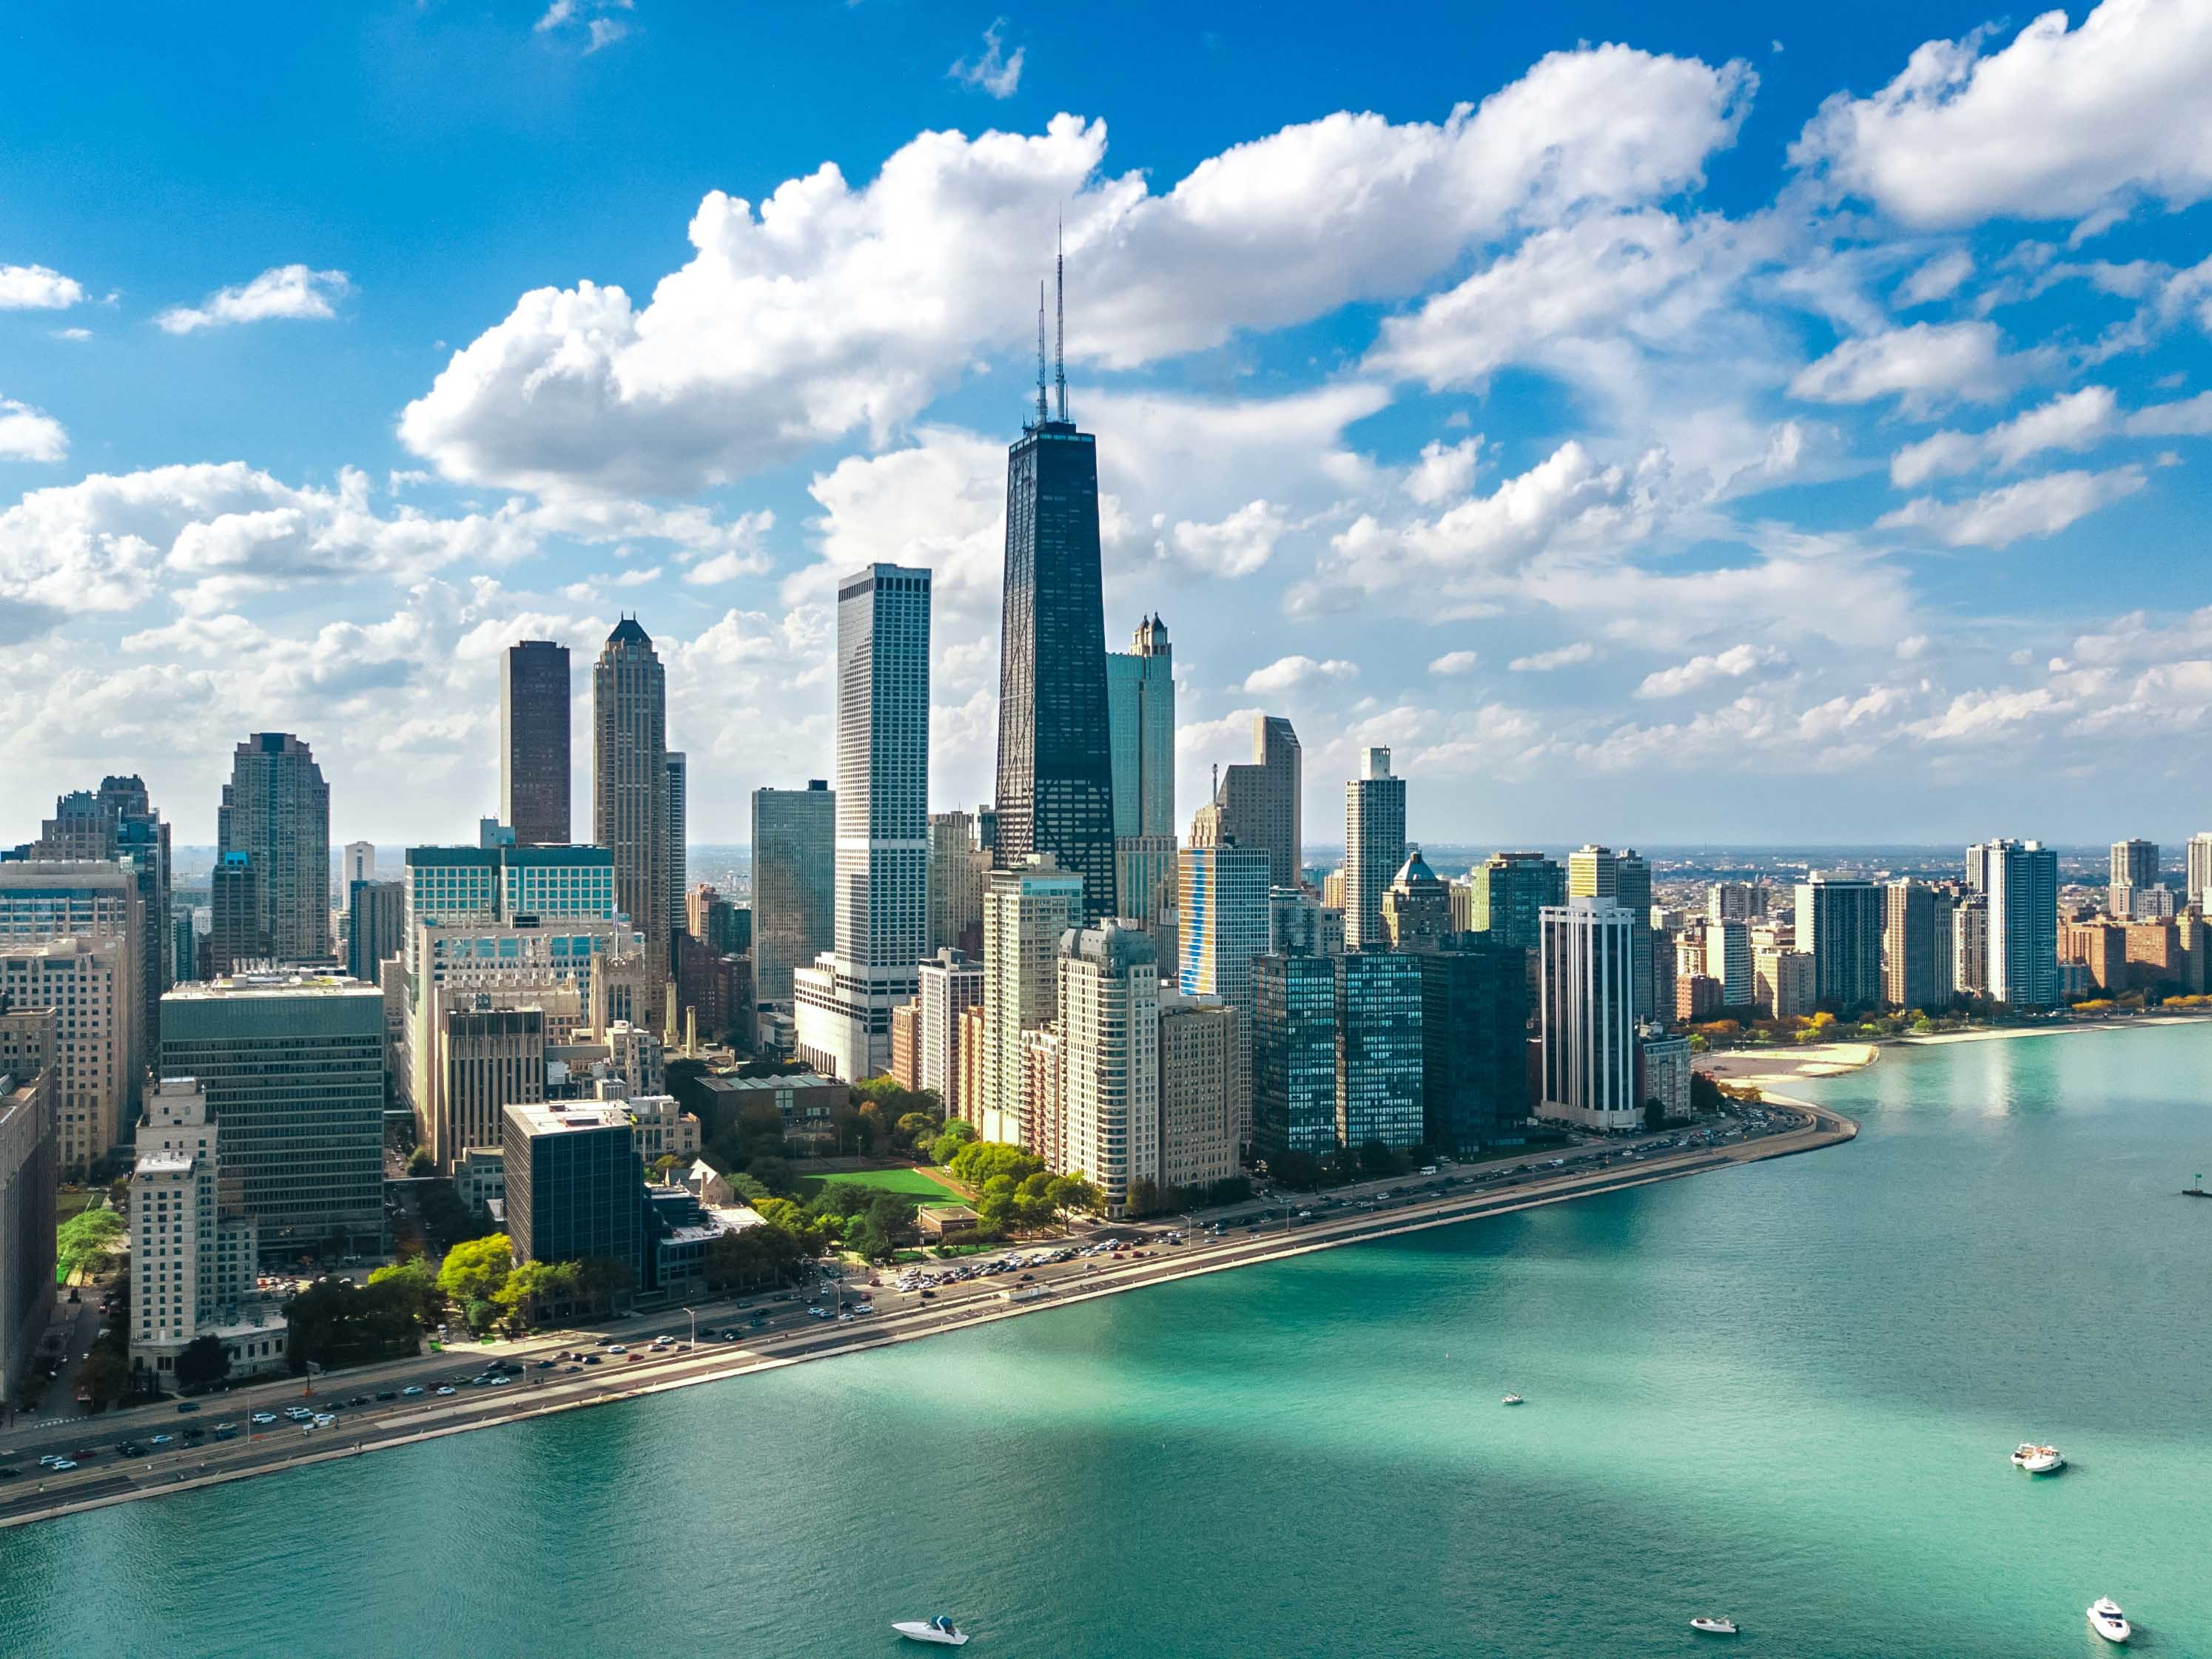 31 ways to still have an amazing summer in Chicago